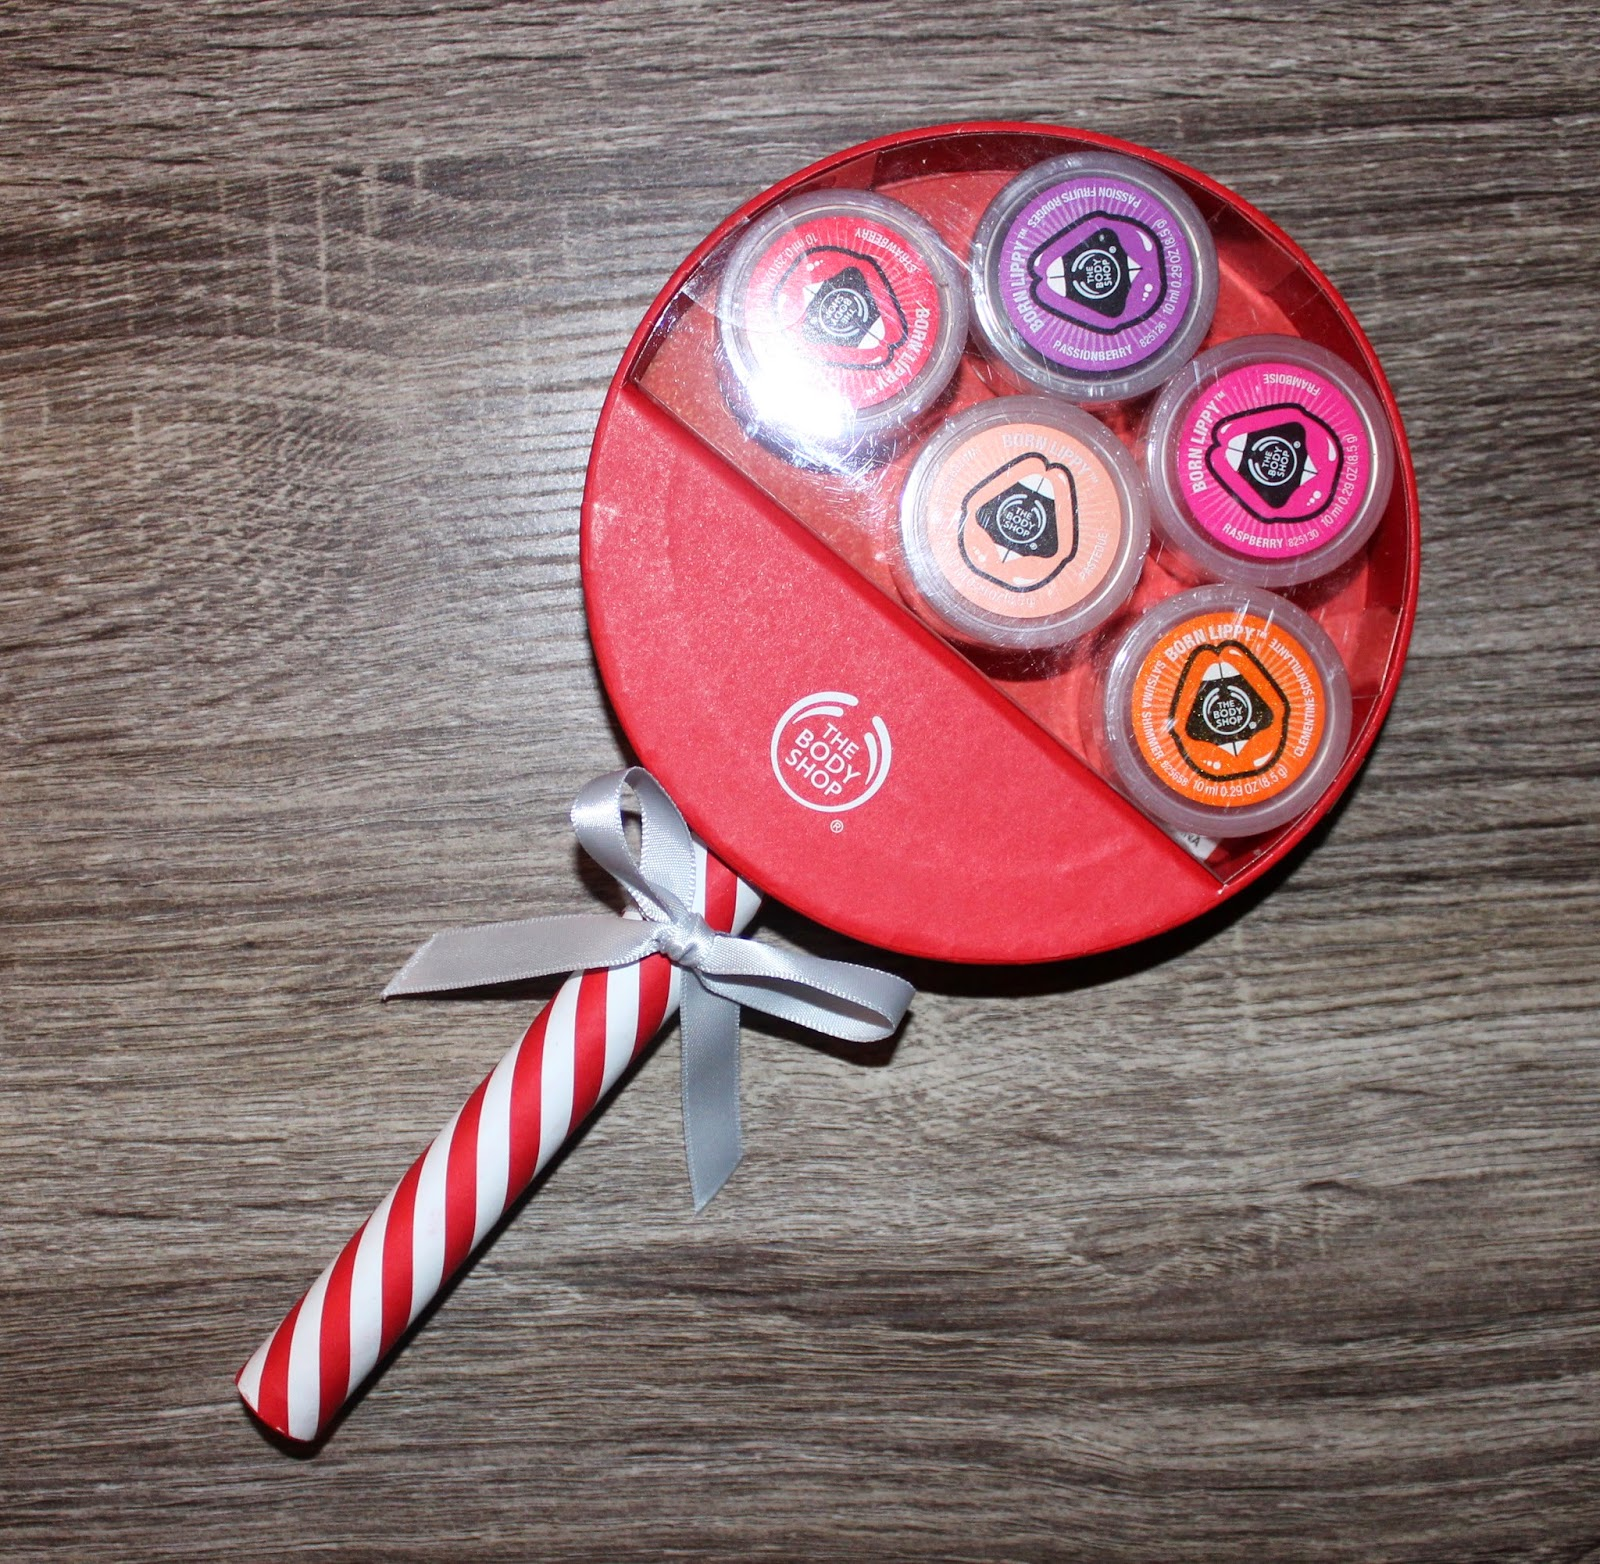 Christmas Gift Sets Body Shop.Beyond Blush Christmas Gifts From The Body Shop